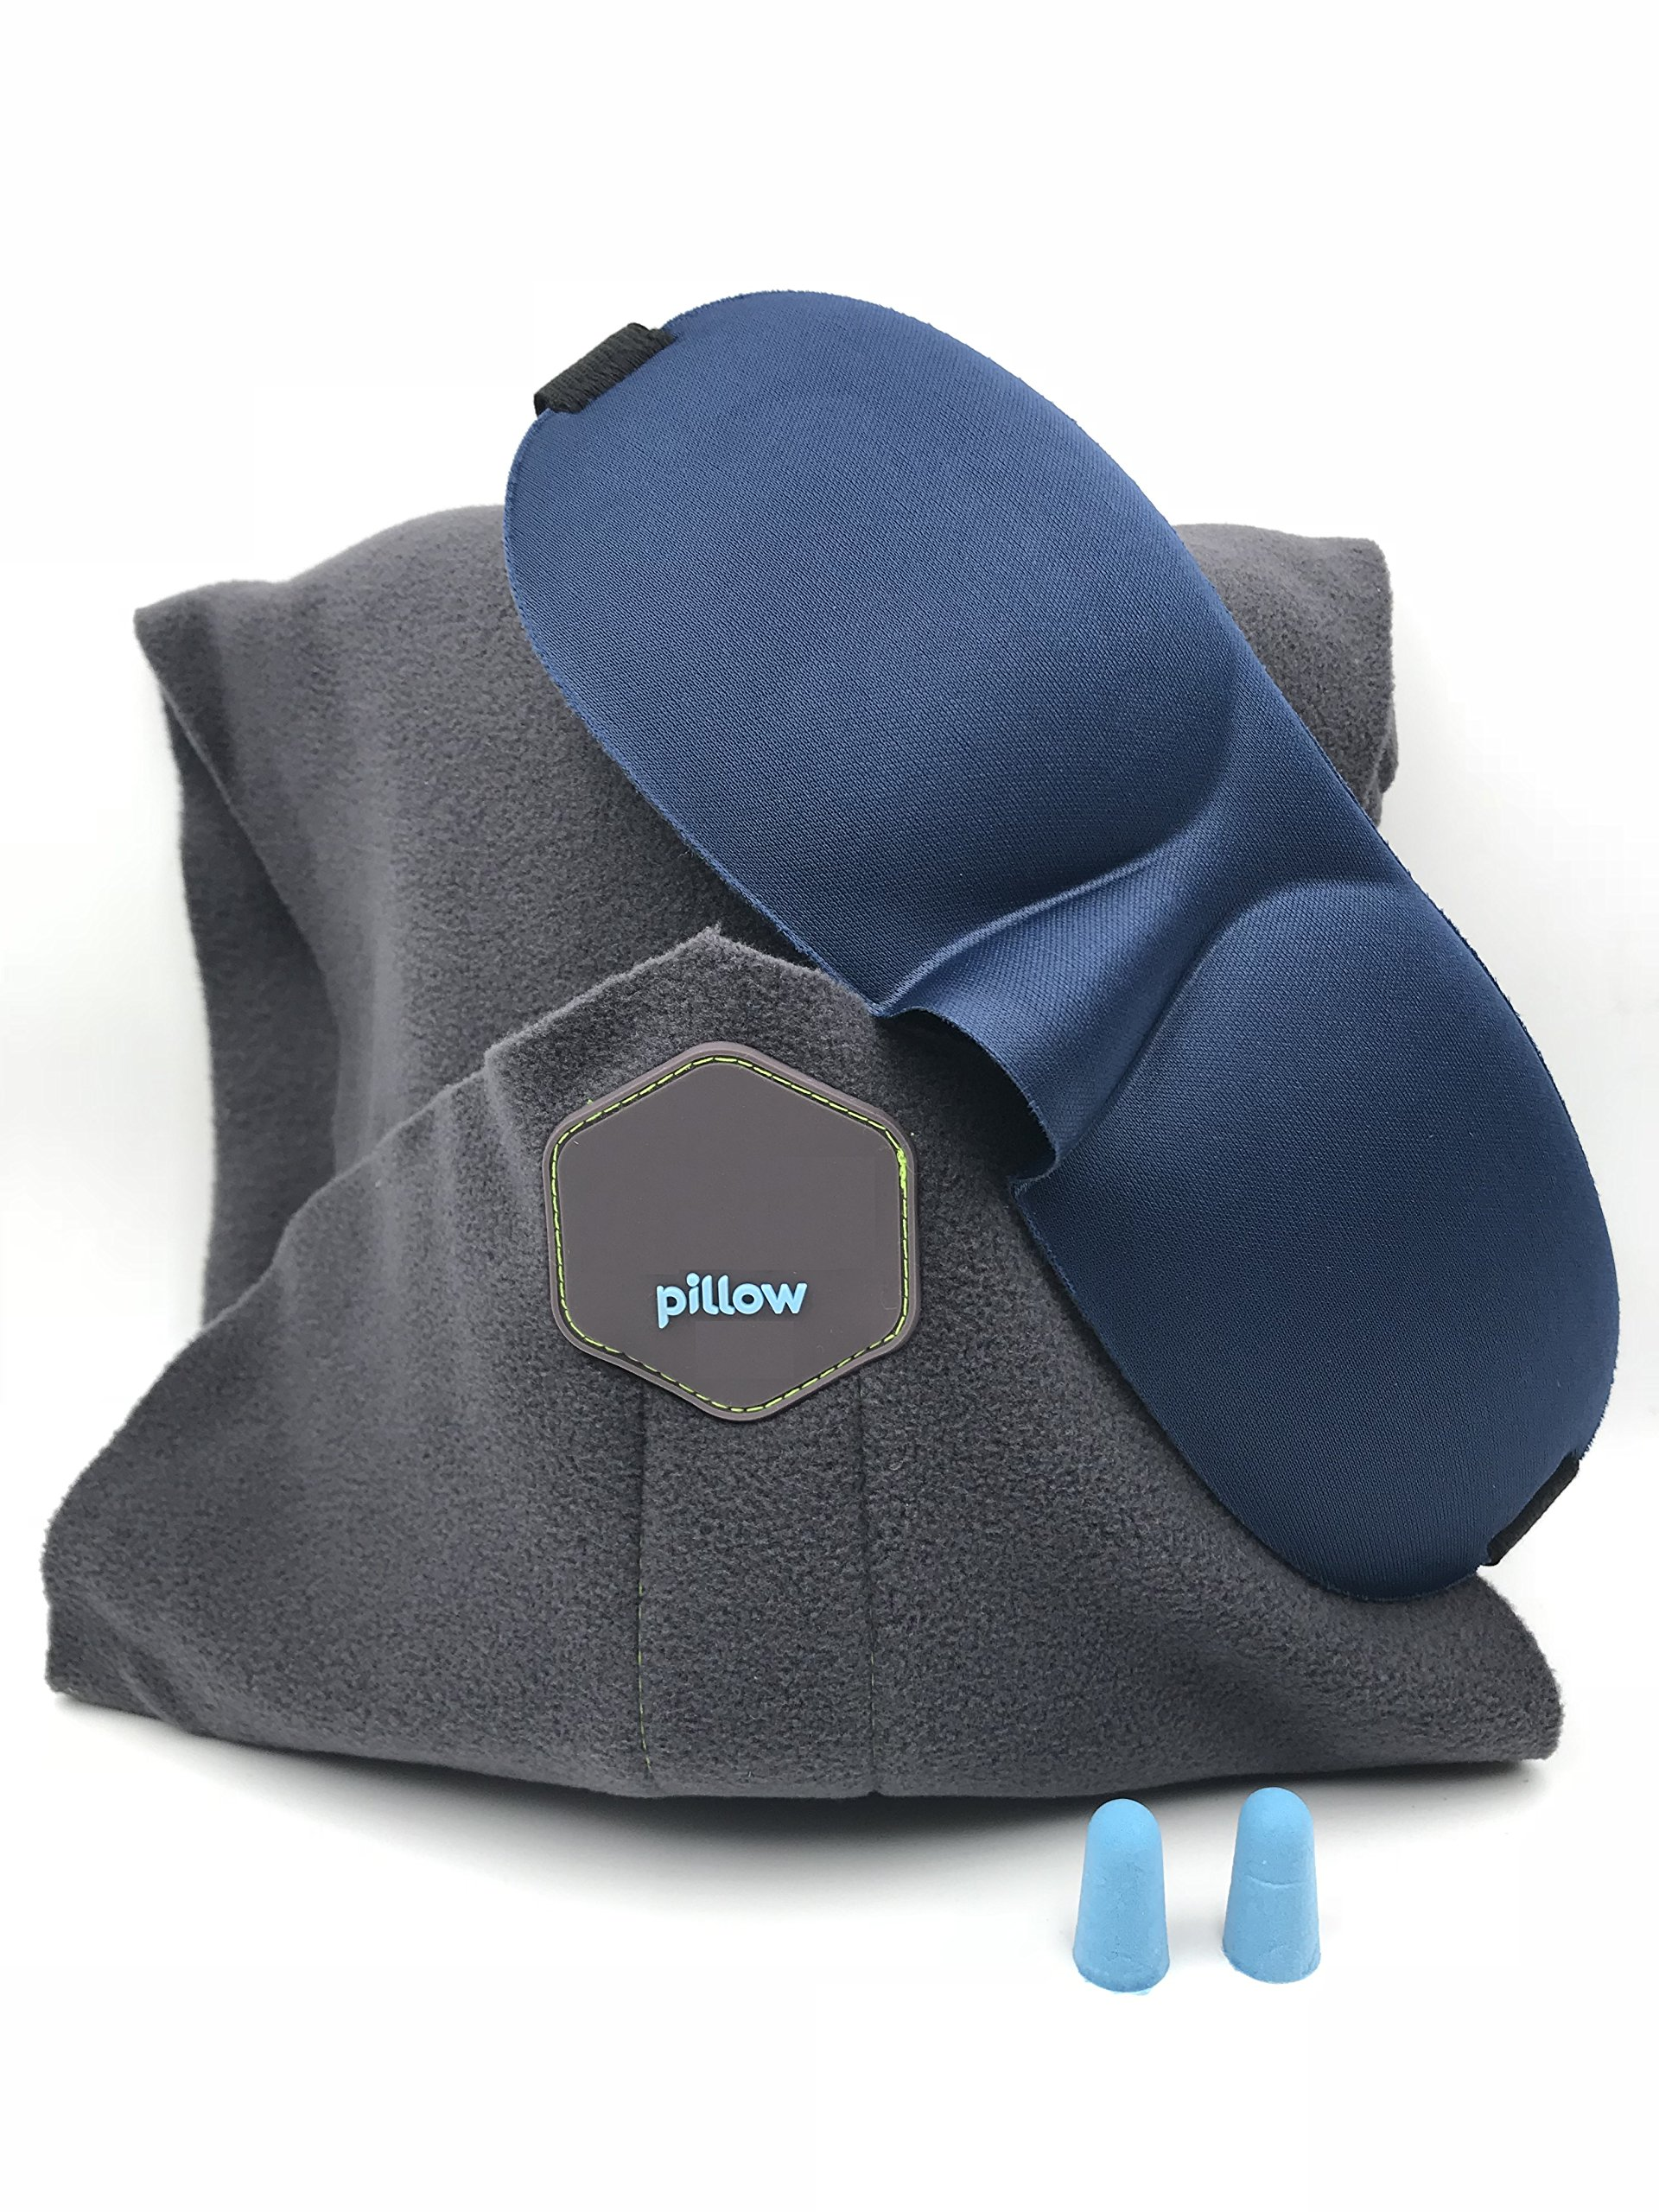 Modernlife Travel Pillow, Airplane Neck Proven Pillow, Memory Foam Pillow, Airplane Sleep Pillow, Airplane Pillow Scarf, Travel Neck Pillow, Travel Pillow Scarf, Machine Washable for Outdoor, Camping